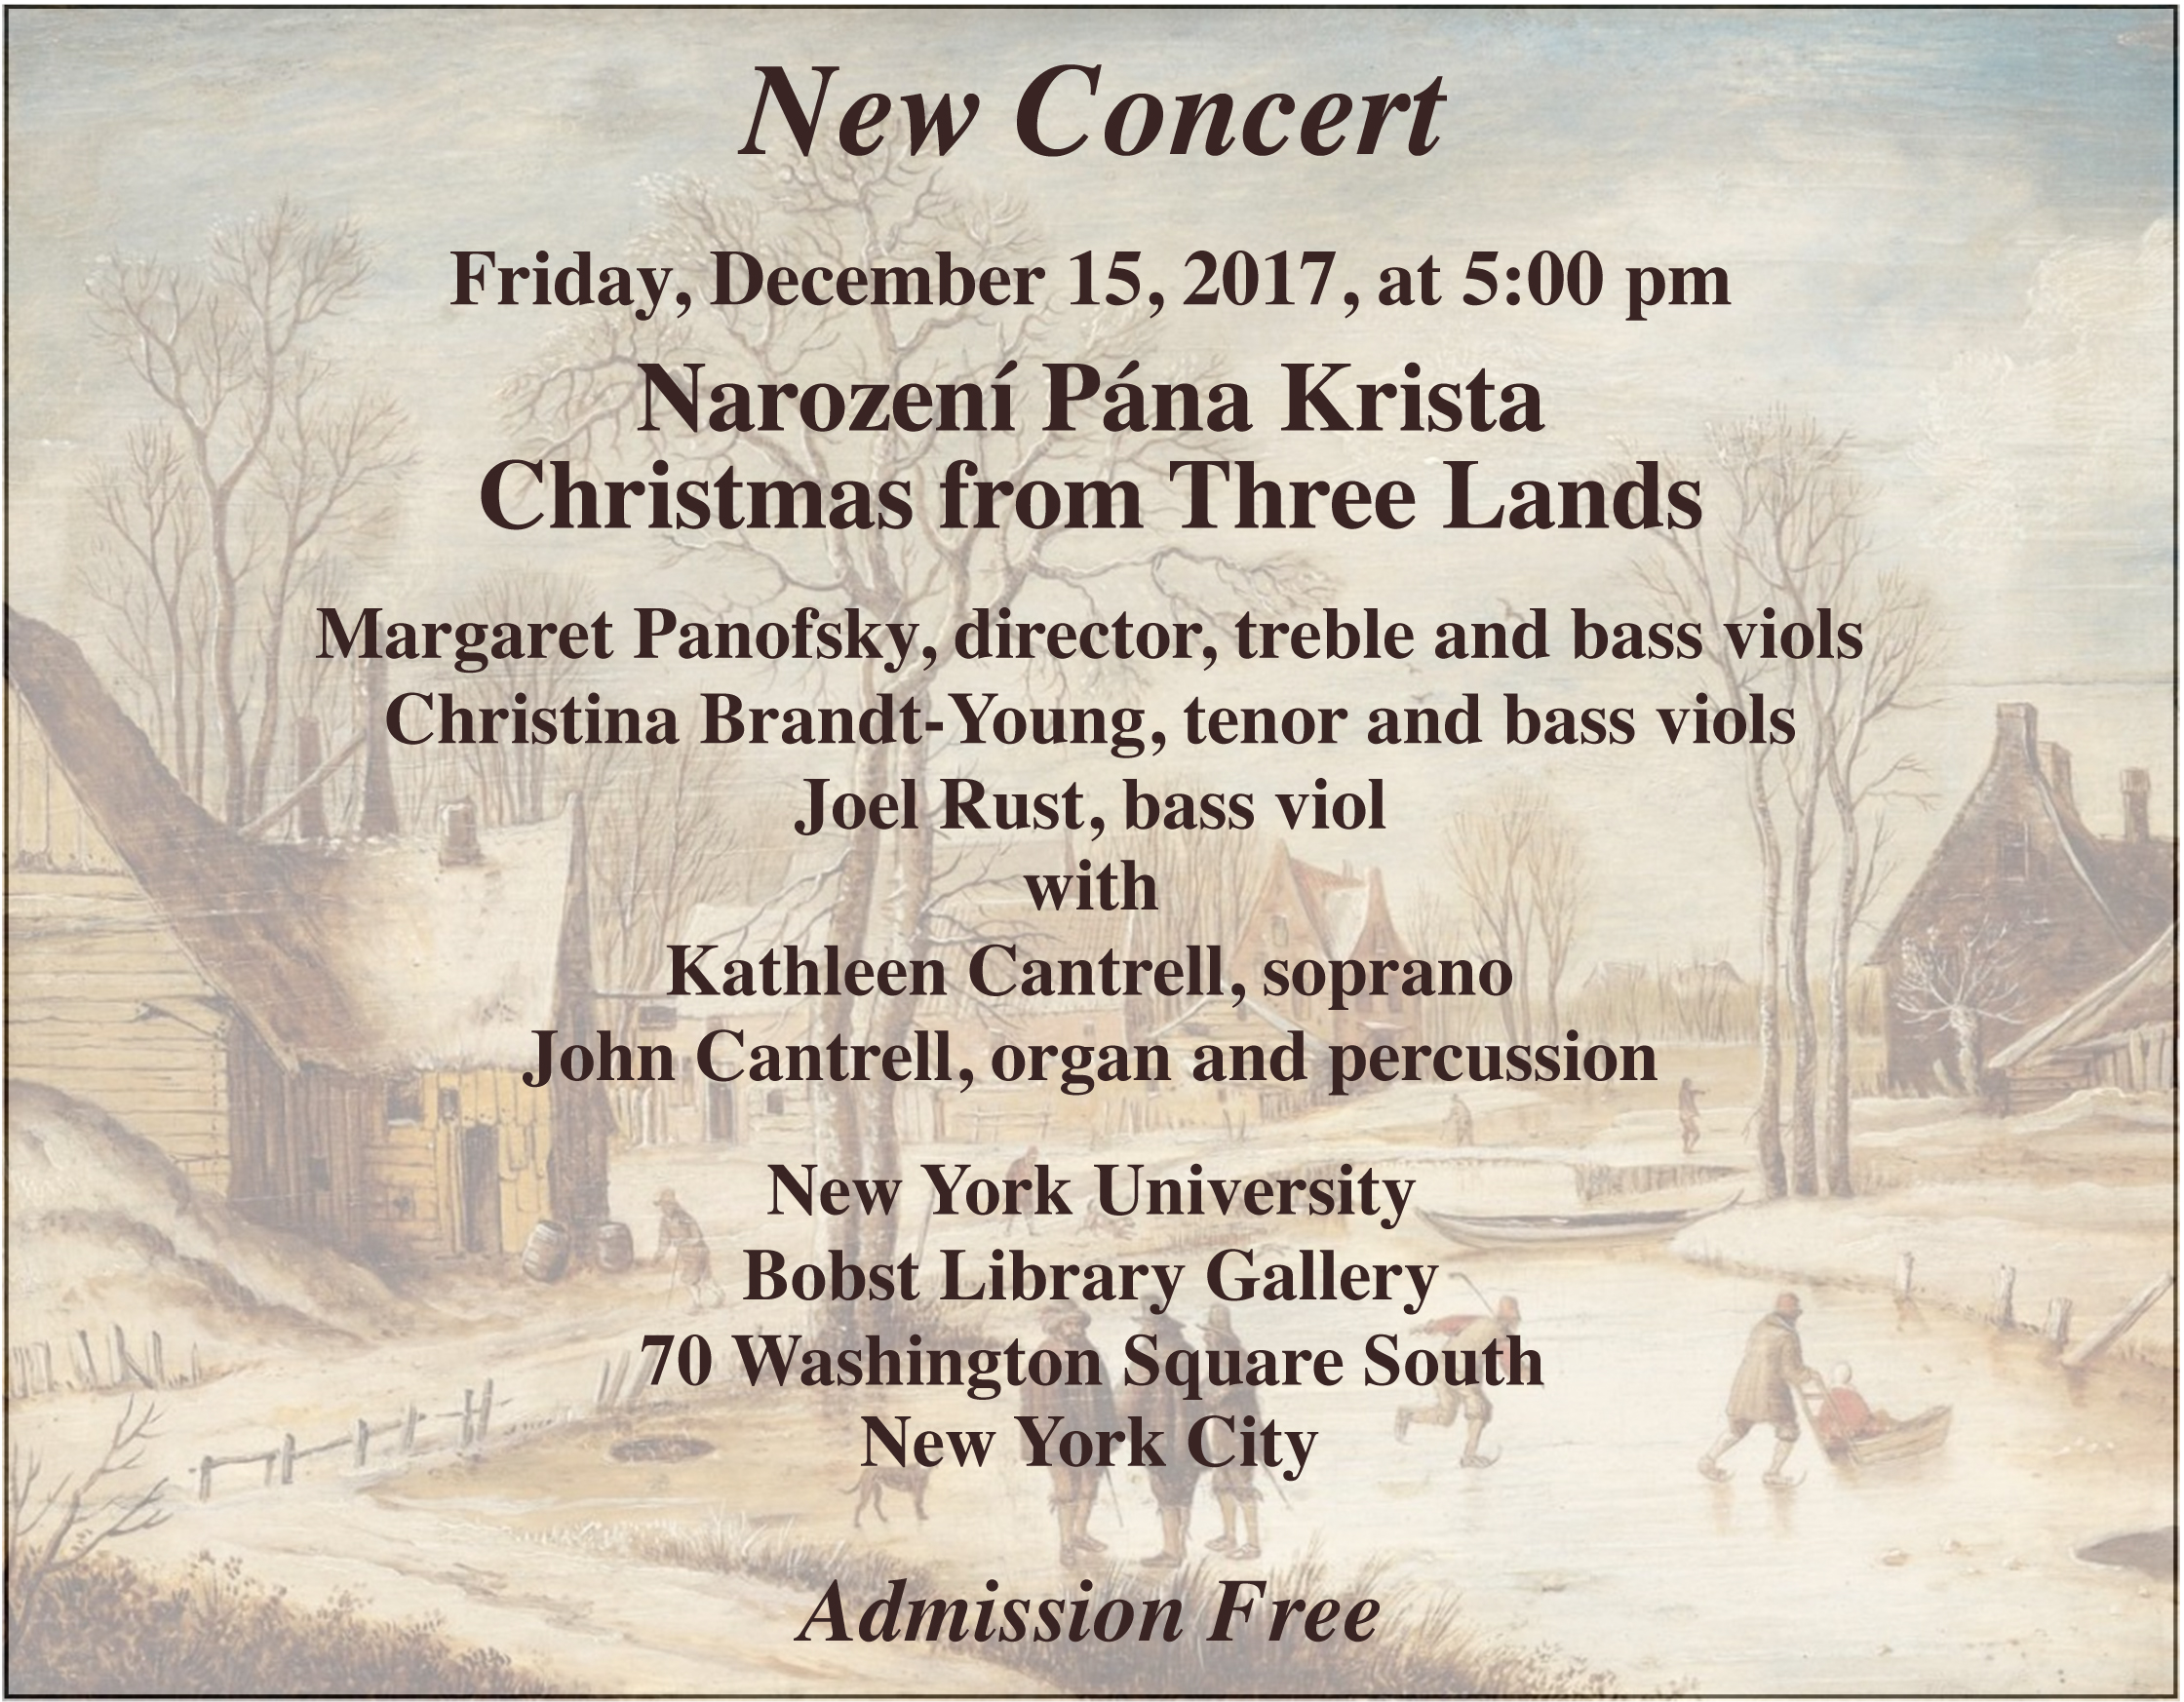 New Concert: Friday, December 15, 2017, at 5:00 pm. Nazorení Pána Krista: Christmas from Three Lands. Margaret Panofsky, director, treble and bass viols; Christina Brandt-Young, tenor and bass viols; Joel Rust, bass viol; with Kathleen Cantrell, soprano; John Cantrell, organ and percussion. New York University, Bobst Library Gallery, 70 Washington Square South, New York City. Admission Free